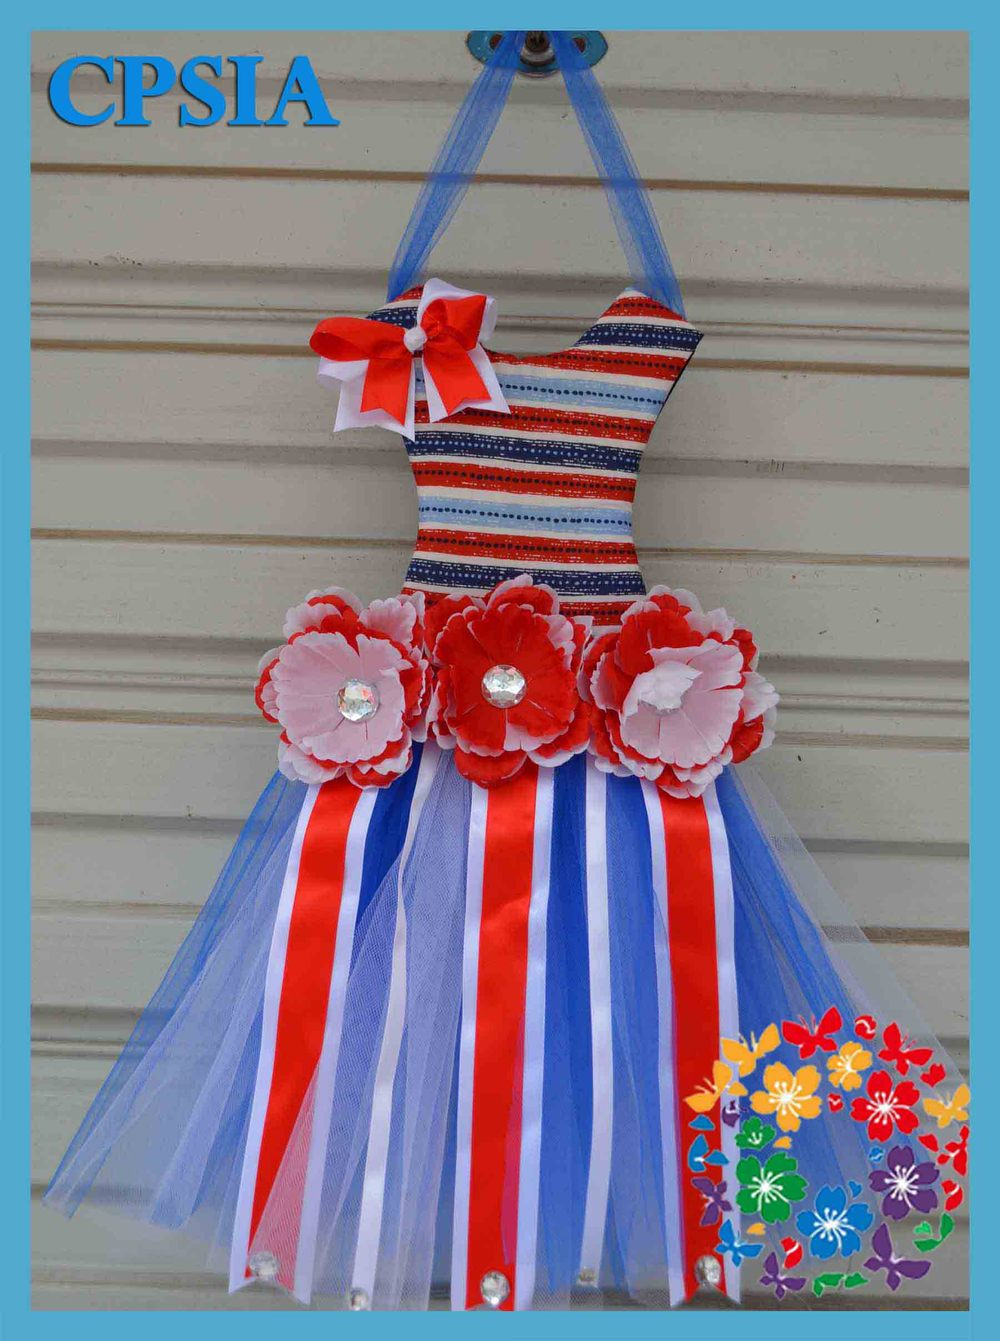 2013 Hot patterns for girl dresses baby boutique wholesale child baby dress model tutu bow holder(China (Mainland))